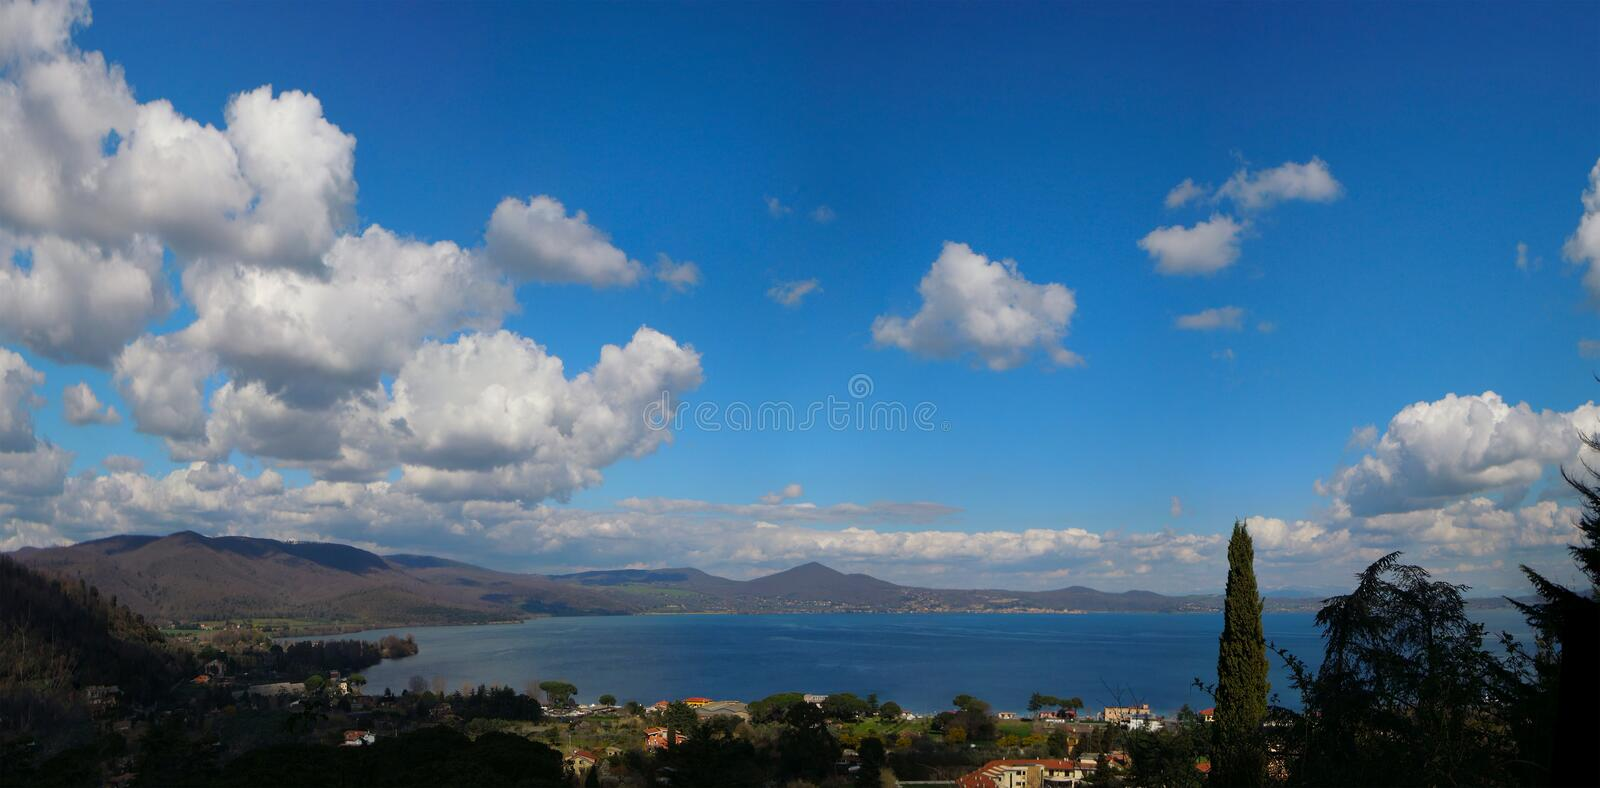 Bracciano lake in spring. A panoramic view of Bracciano lake, near Rome, Italy in a clear, sunny spring day royalty free stock image